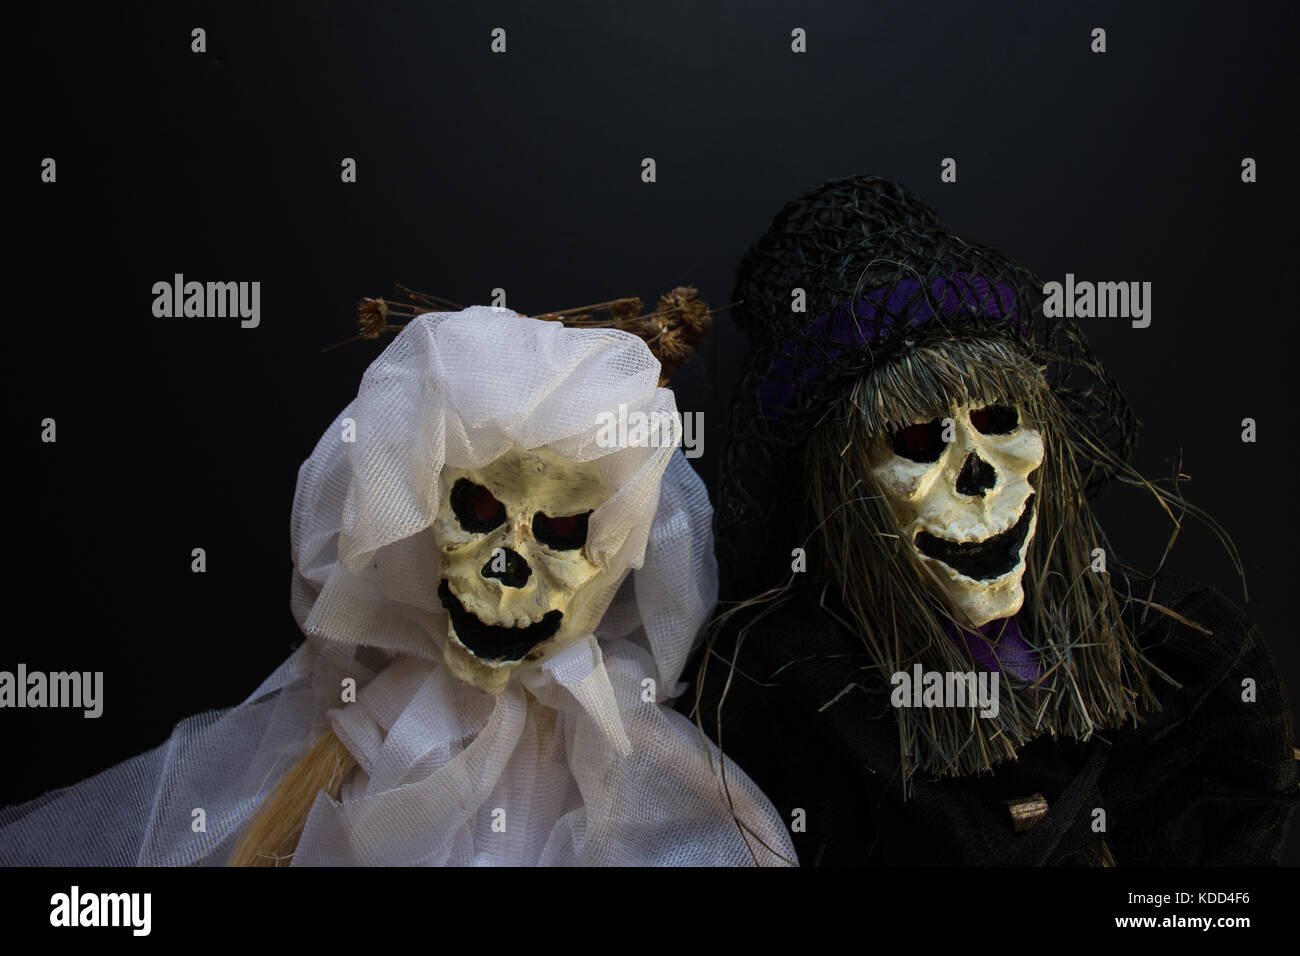 Close up of skeleton bride and groom in white and black,  against a black background. - Stock Image